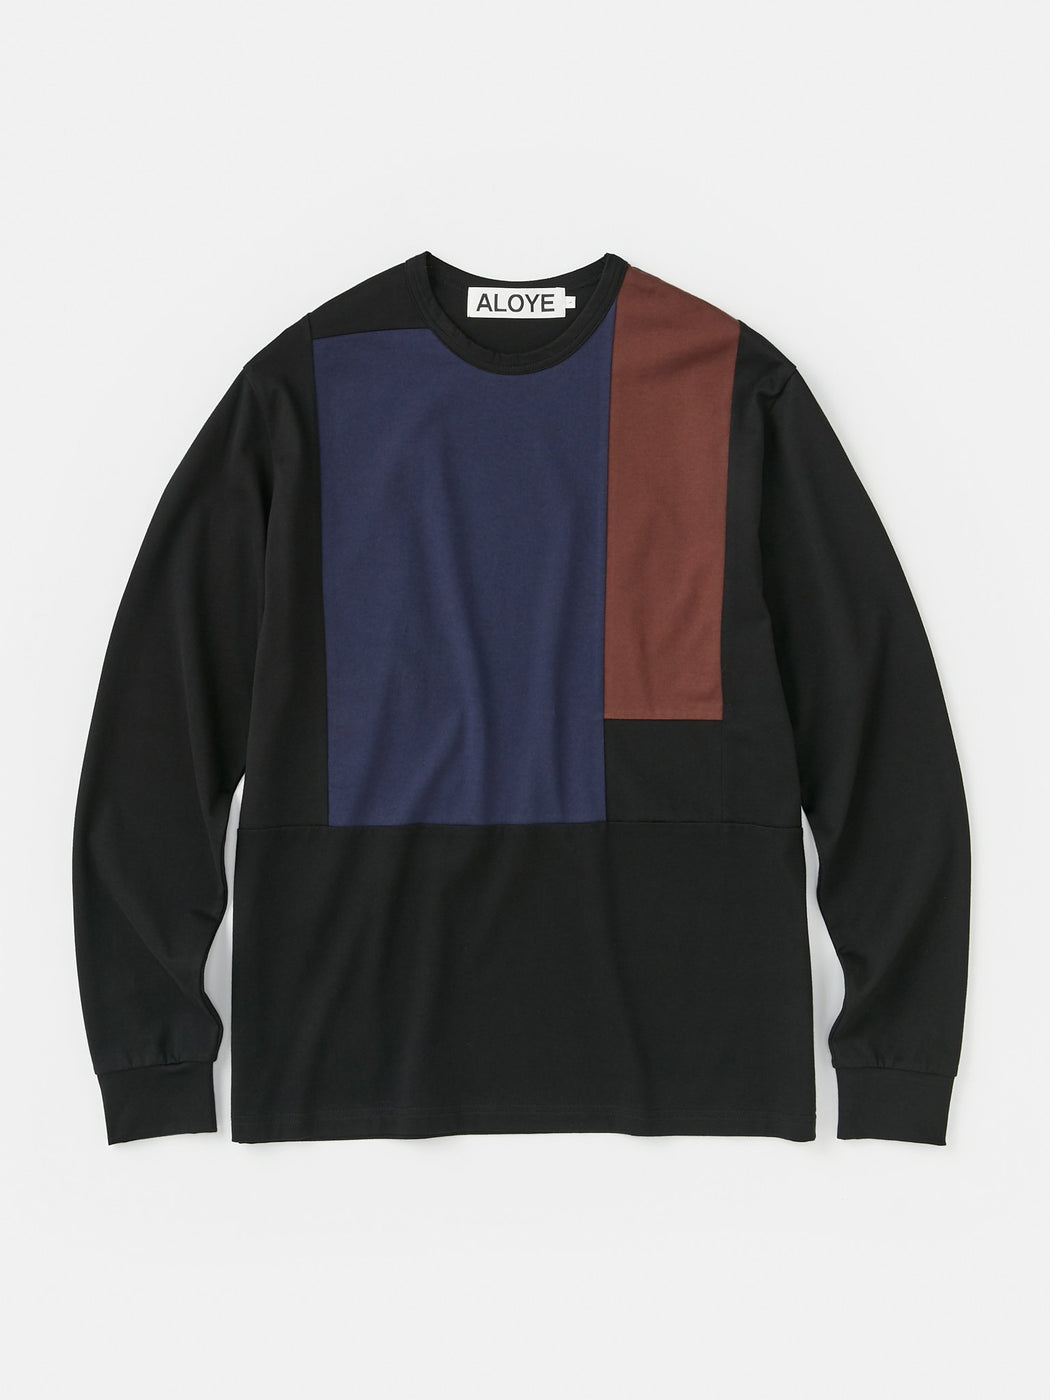 ALOYE Color Block Long Sleeve T-shirt Black-Navy-Brown